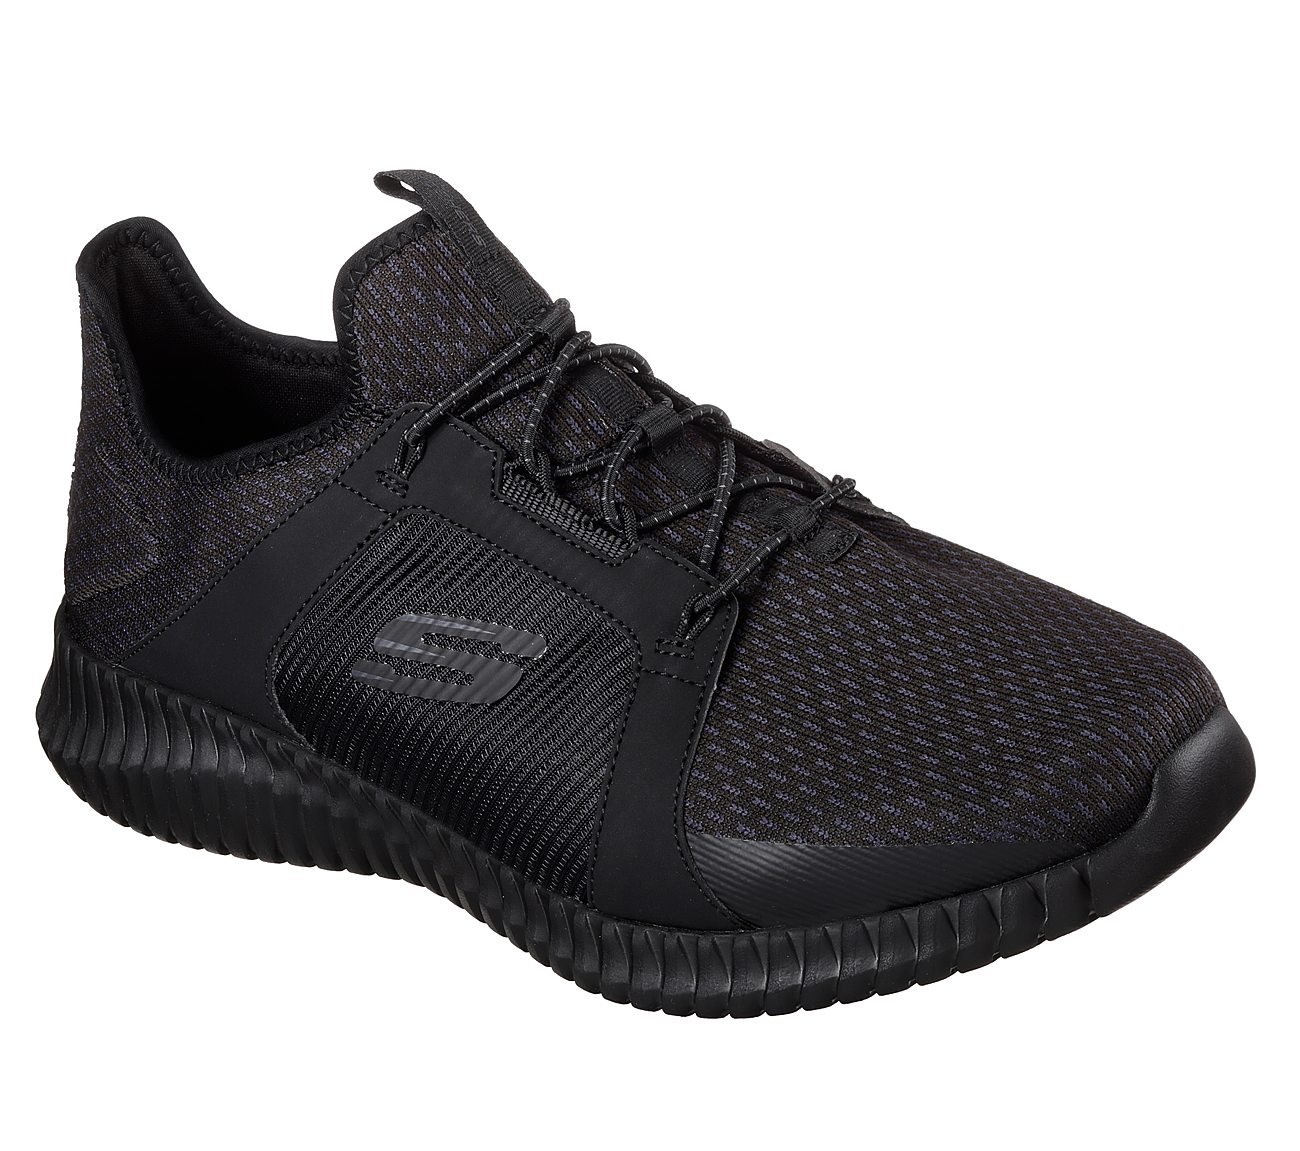 SKECHERS Elite Flex SKECHERS Sport Shoes